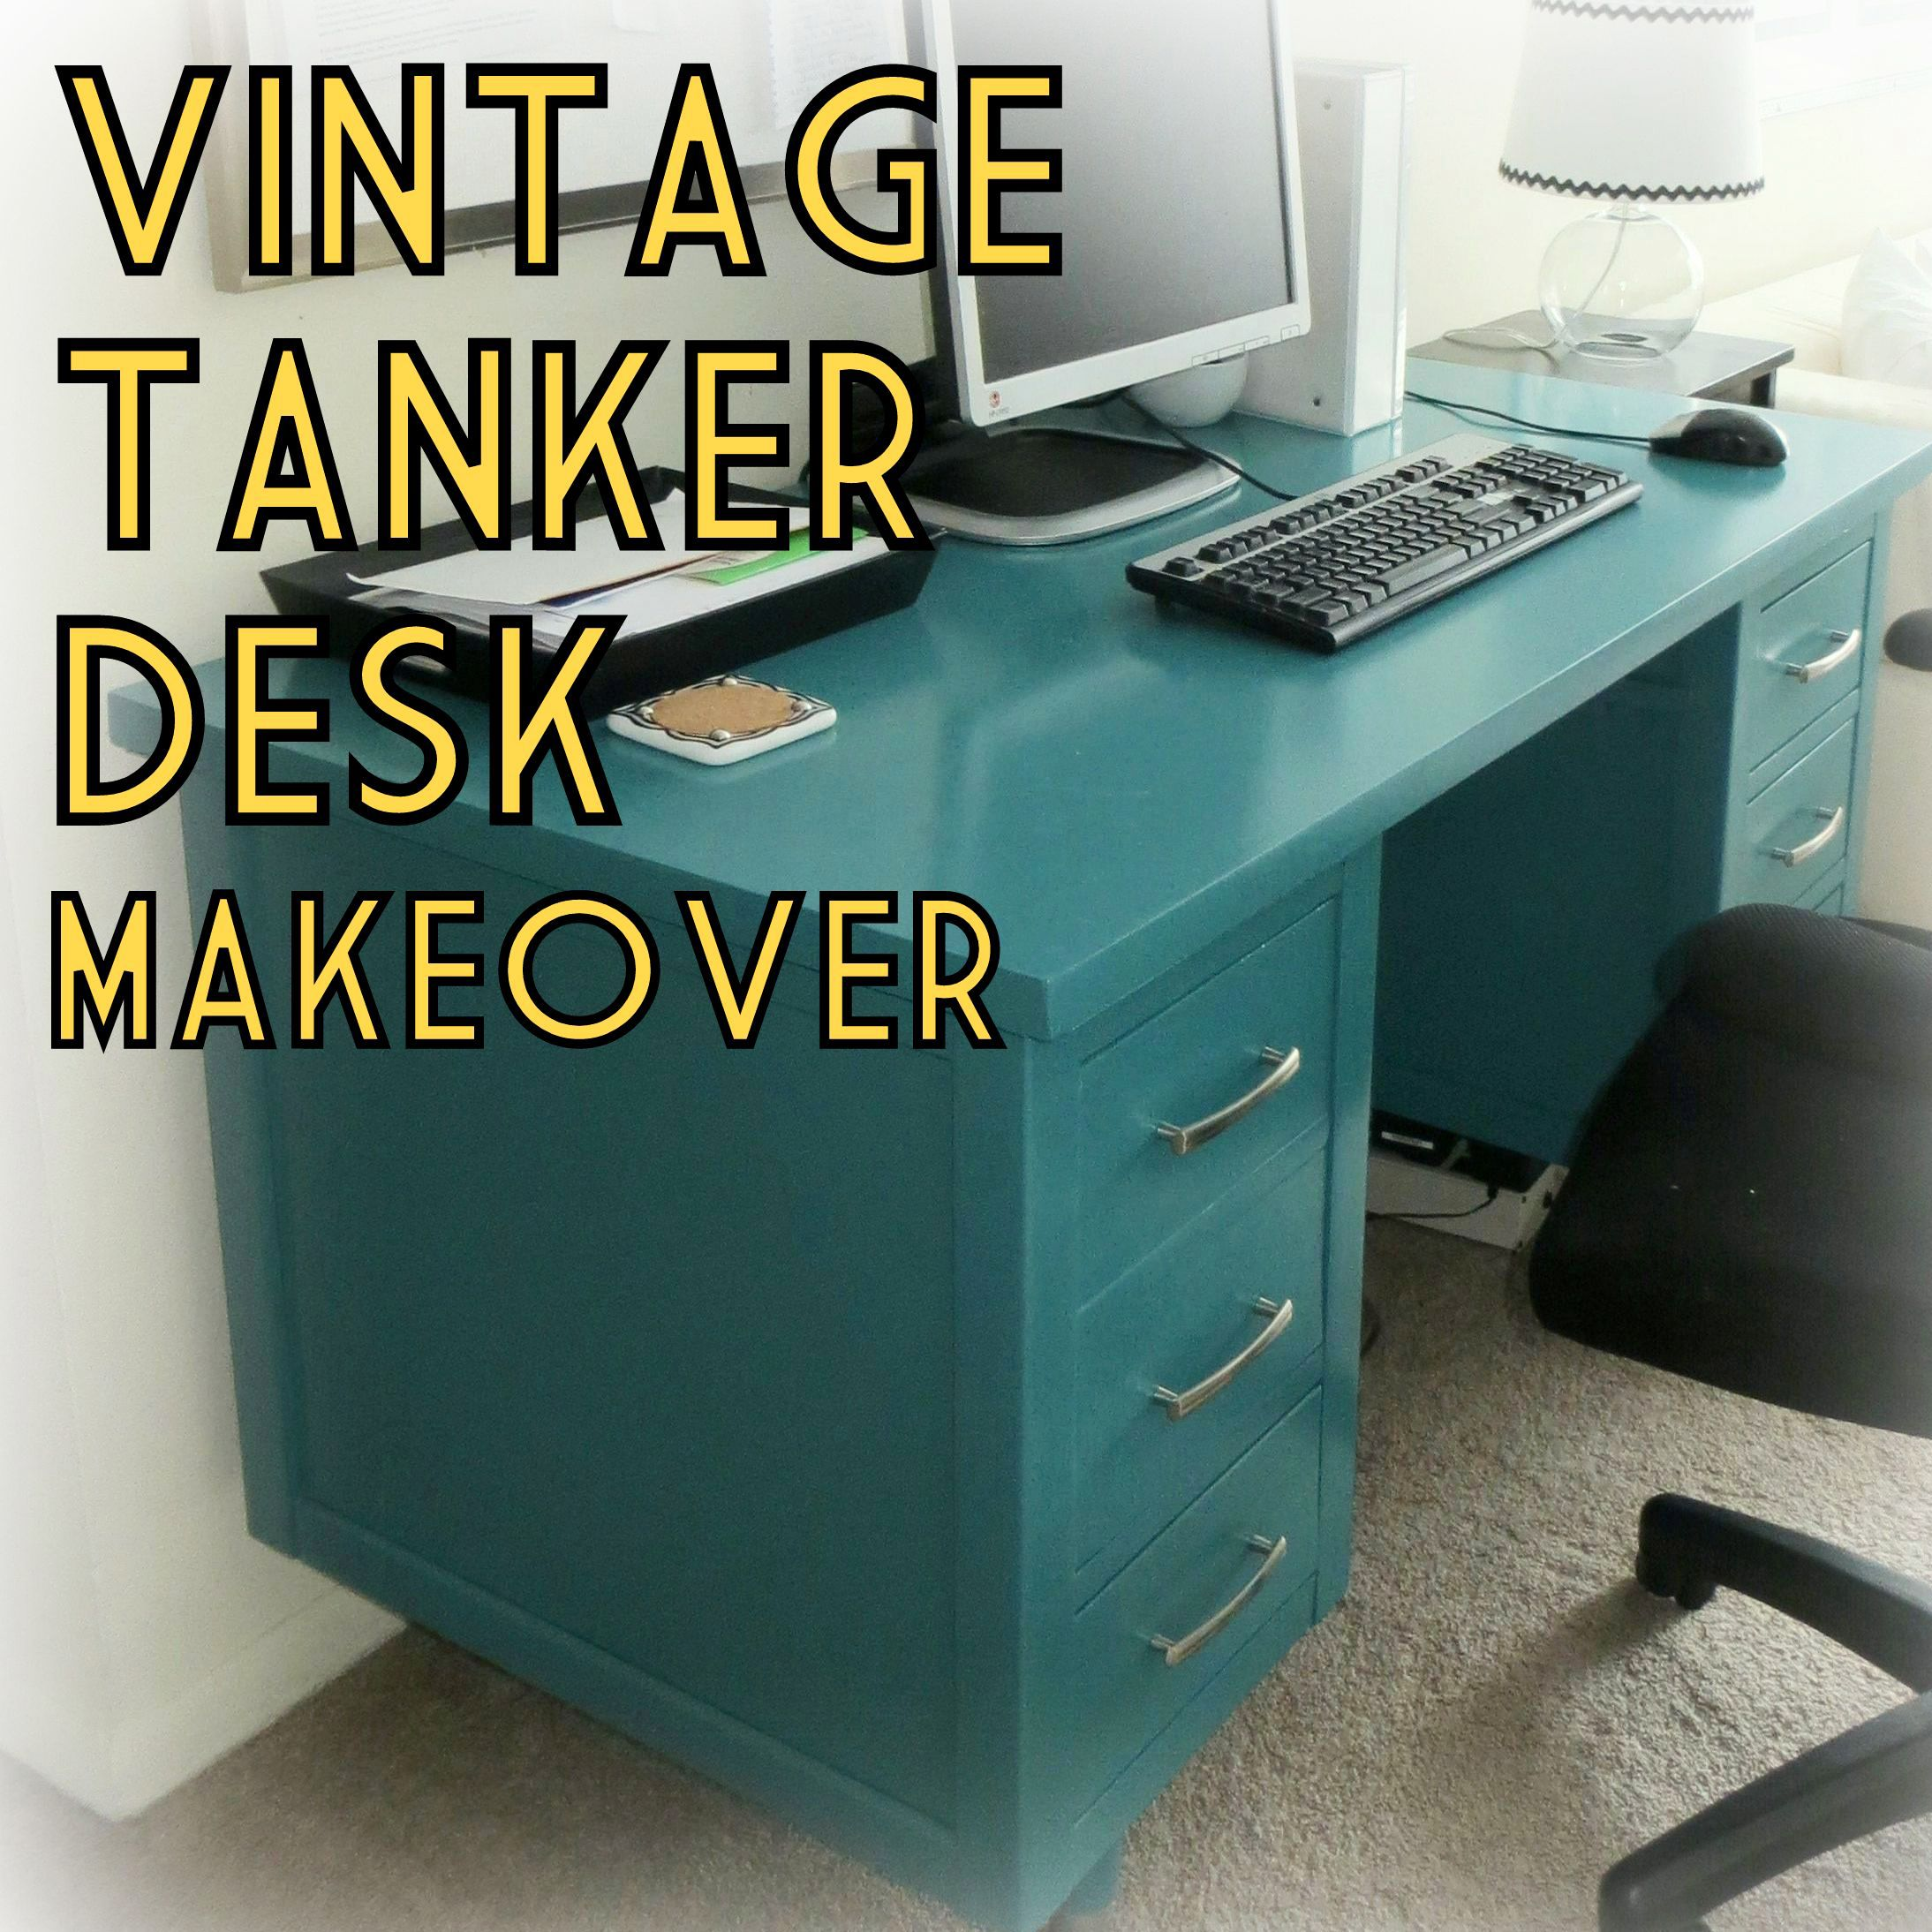 now vintage the hold would room else to golden it gem t up original decided think craft leave laminate com i thecraftpatchblog wood a did just s faux my top in because tanker makeover didn anything desk